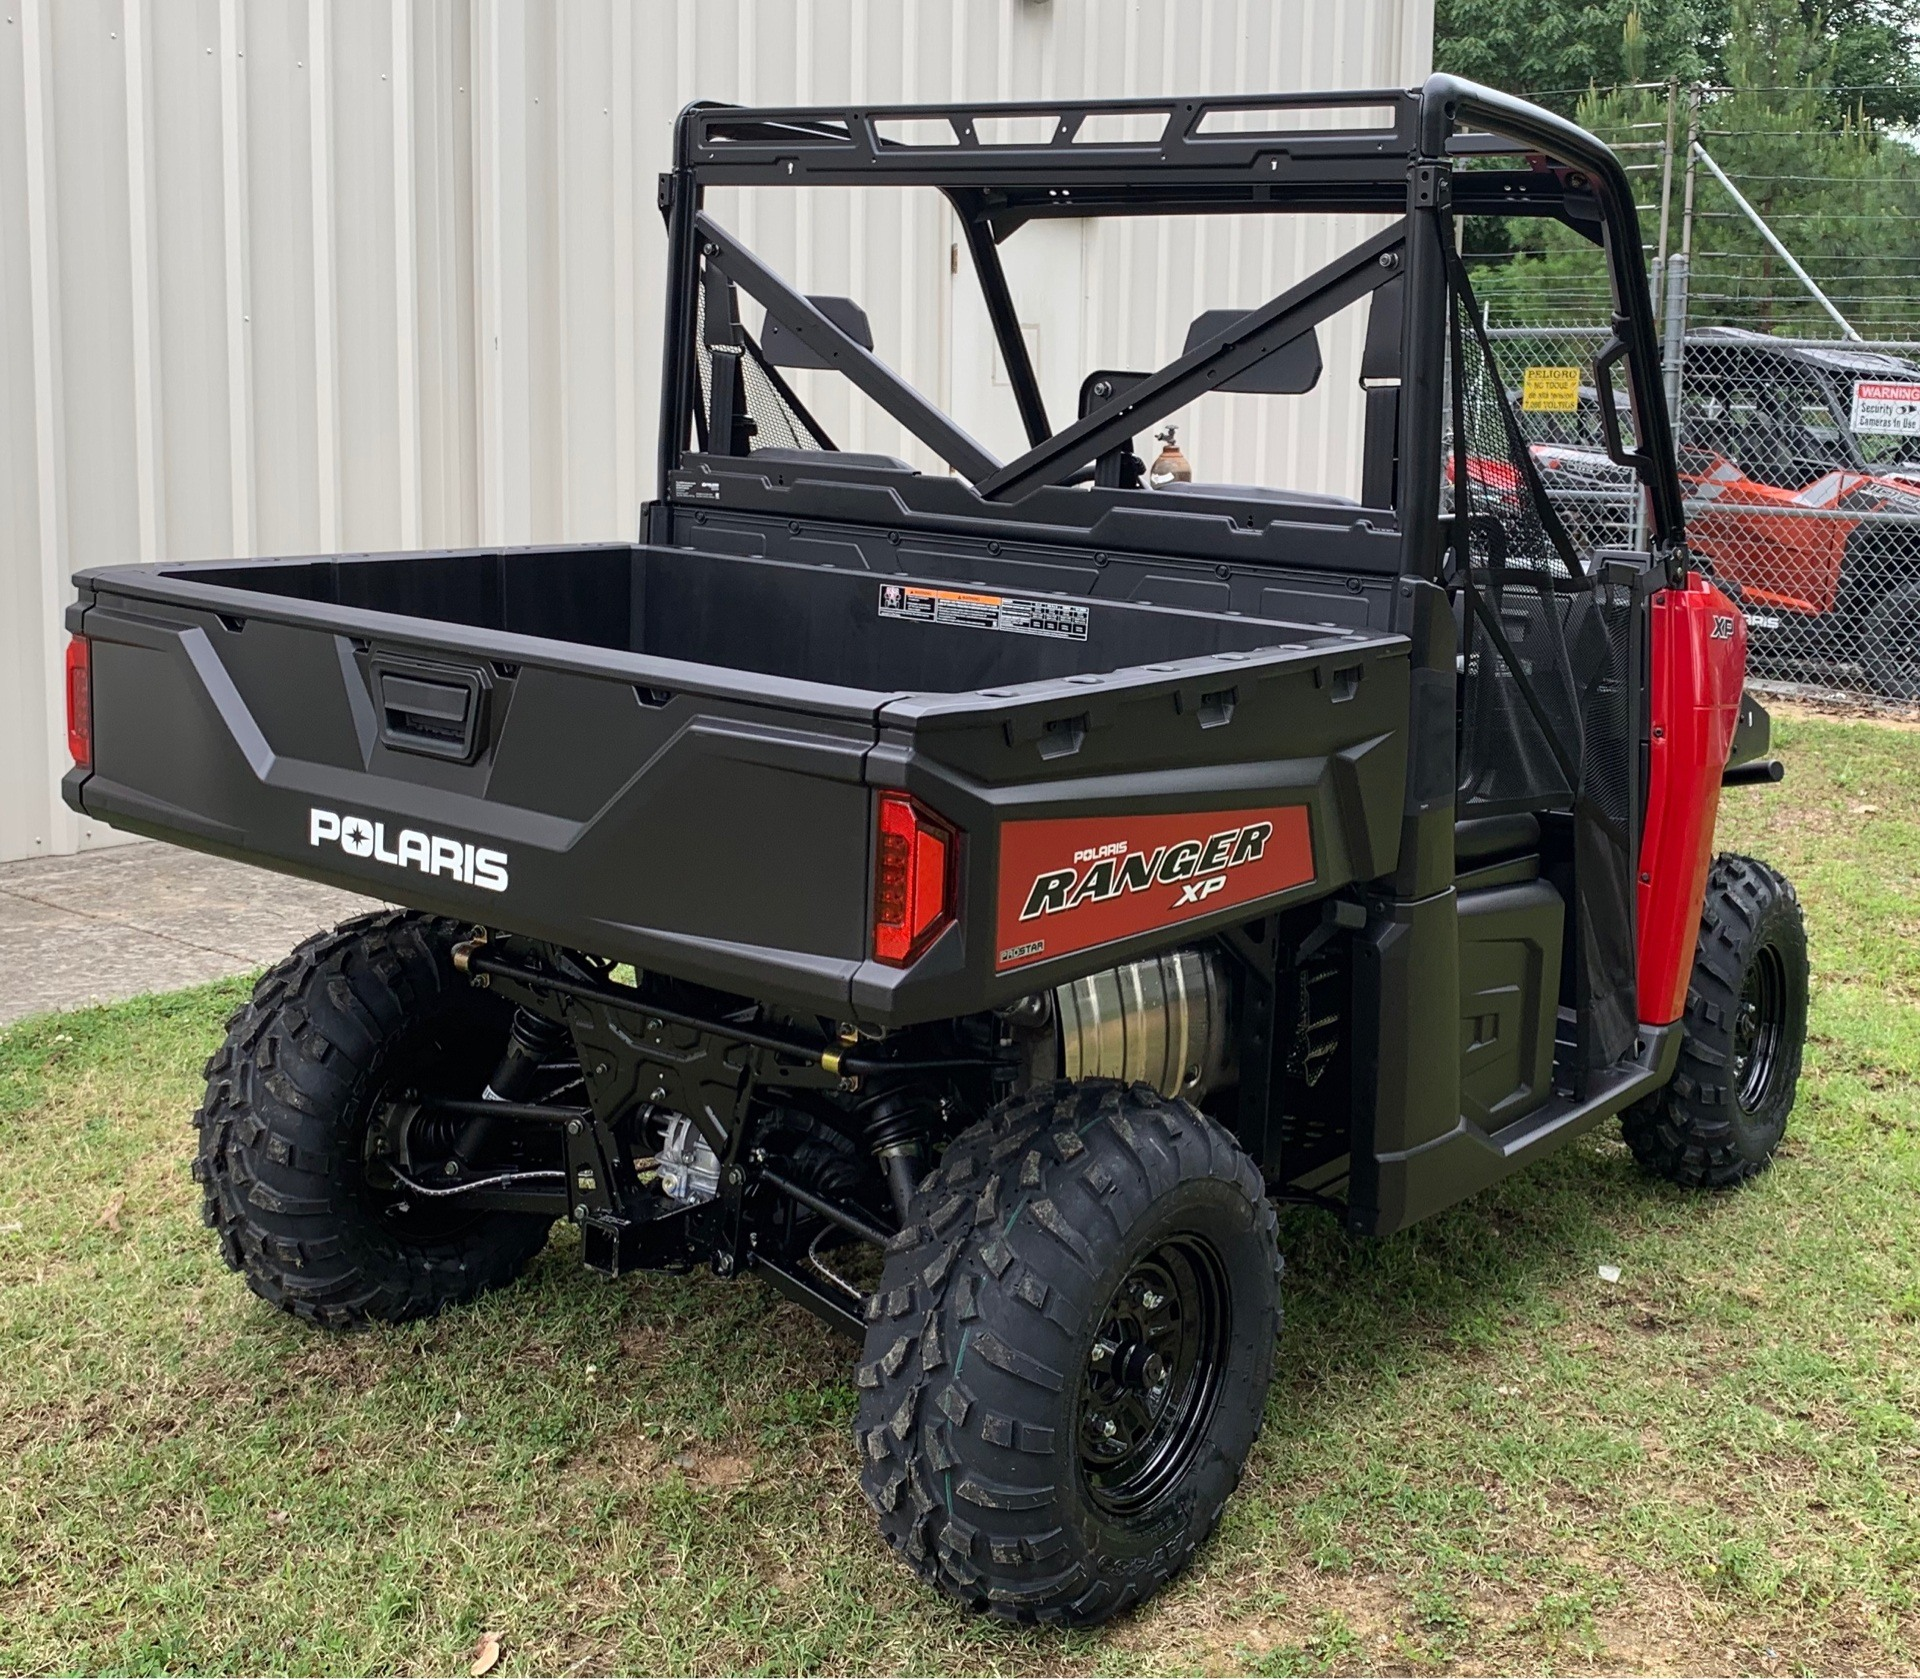 Polaris Ranger Xp 900 >> 2019 Polaris Ranger Xp 900 Eps In High Point North Carolina